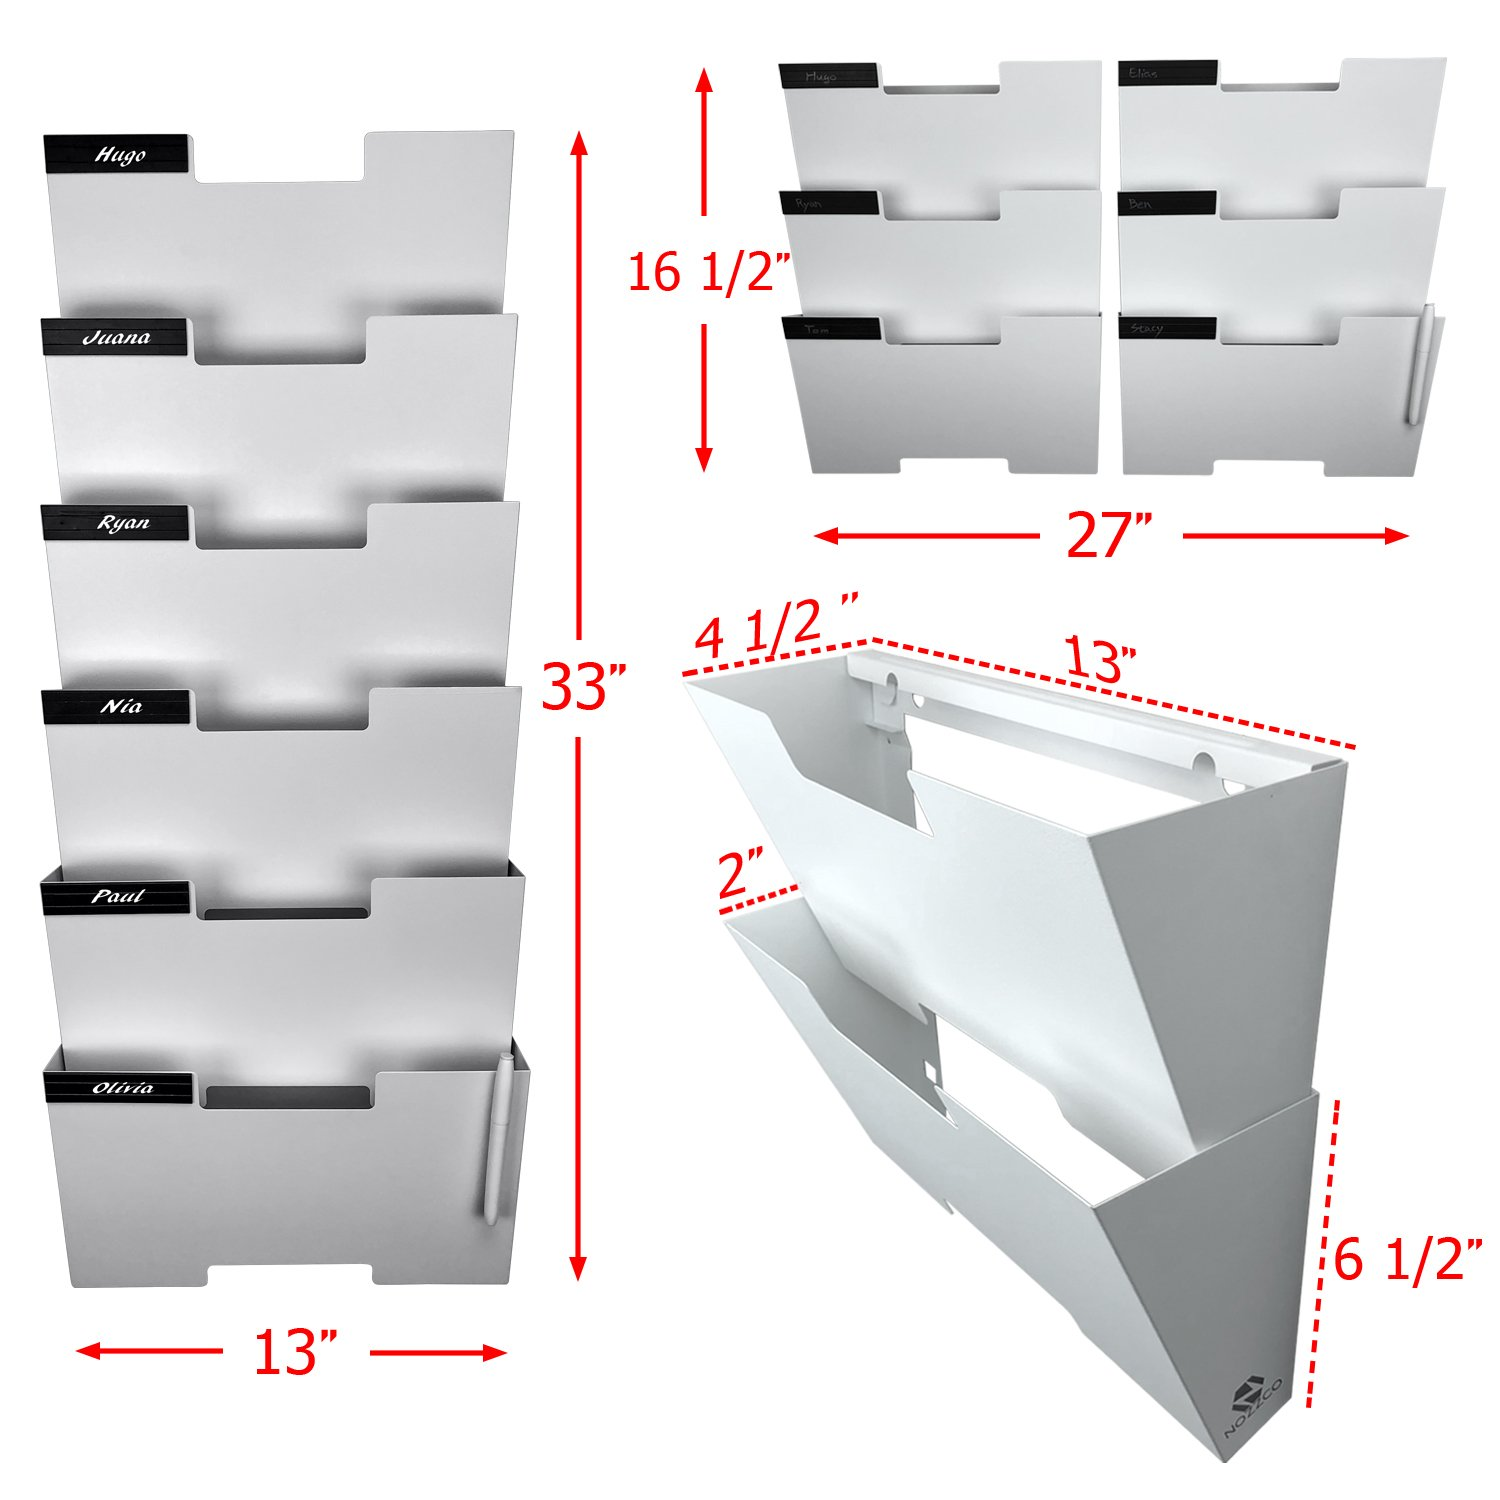 Files Sturdy and Wide for Letters White Wall Mount Hanging File Holder Organizer 6 Pack Durable Steel Rack Solid Magazines and More Organize The Desktop Declutter Your Office Nozzco